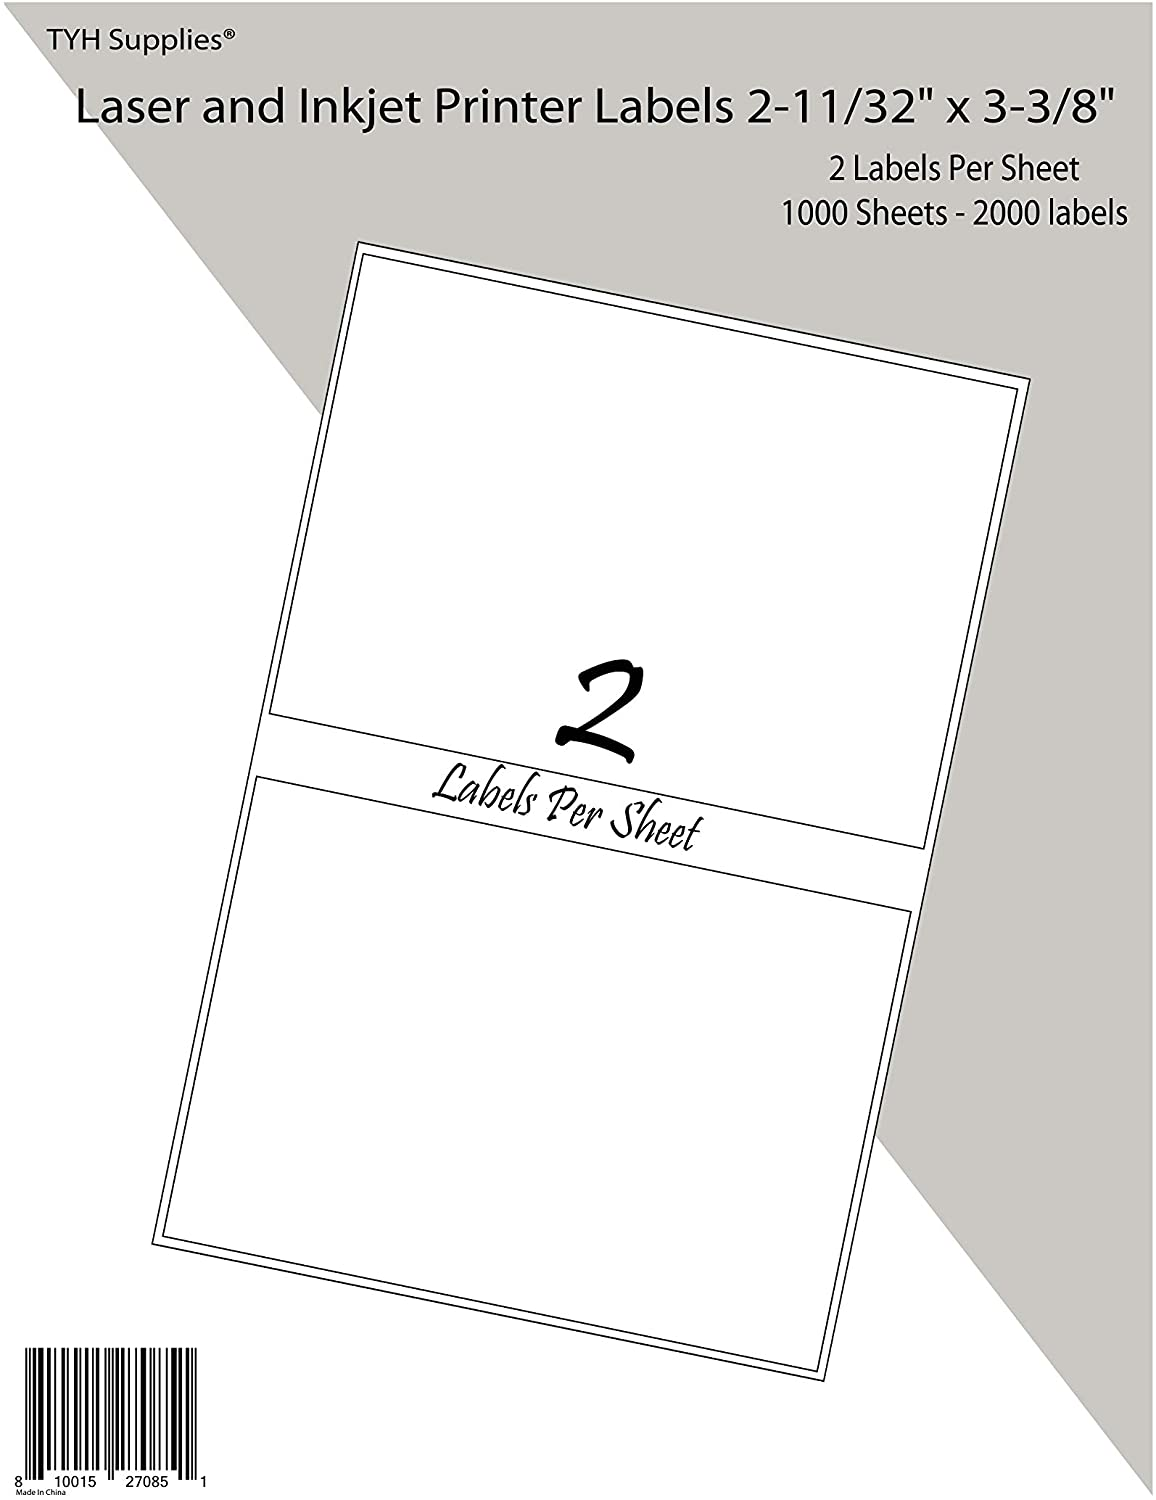 TYH Supplies 2000 Personalized Name Tags Badge White Matte Labels, Print or Write, 2-1/3 x 3-3/8 Inch, Laser and Inkjet, Strong Adhesive, Compatible with Avery 5144 Template